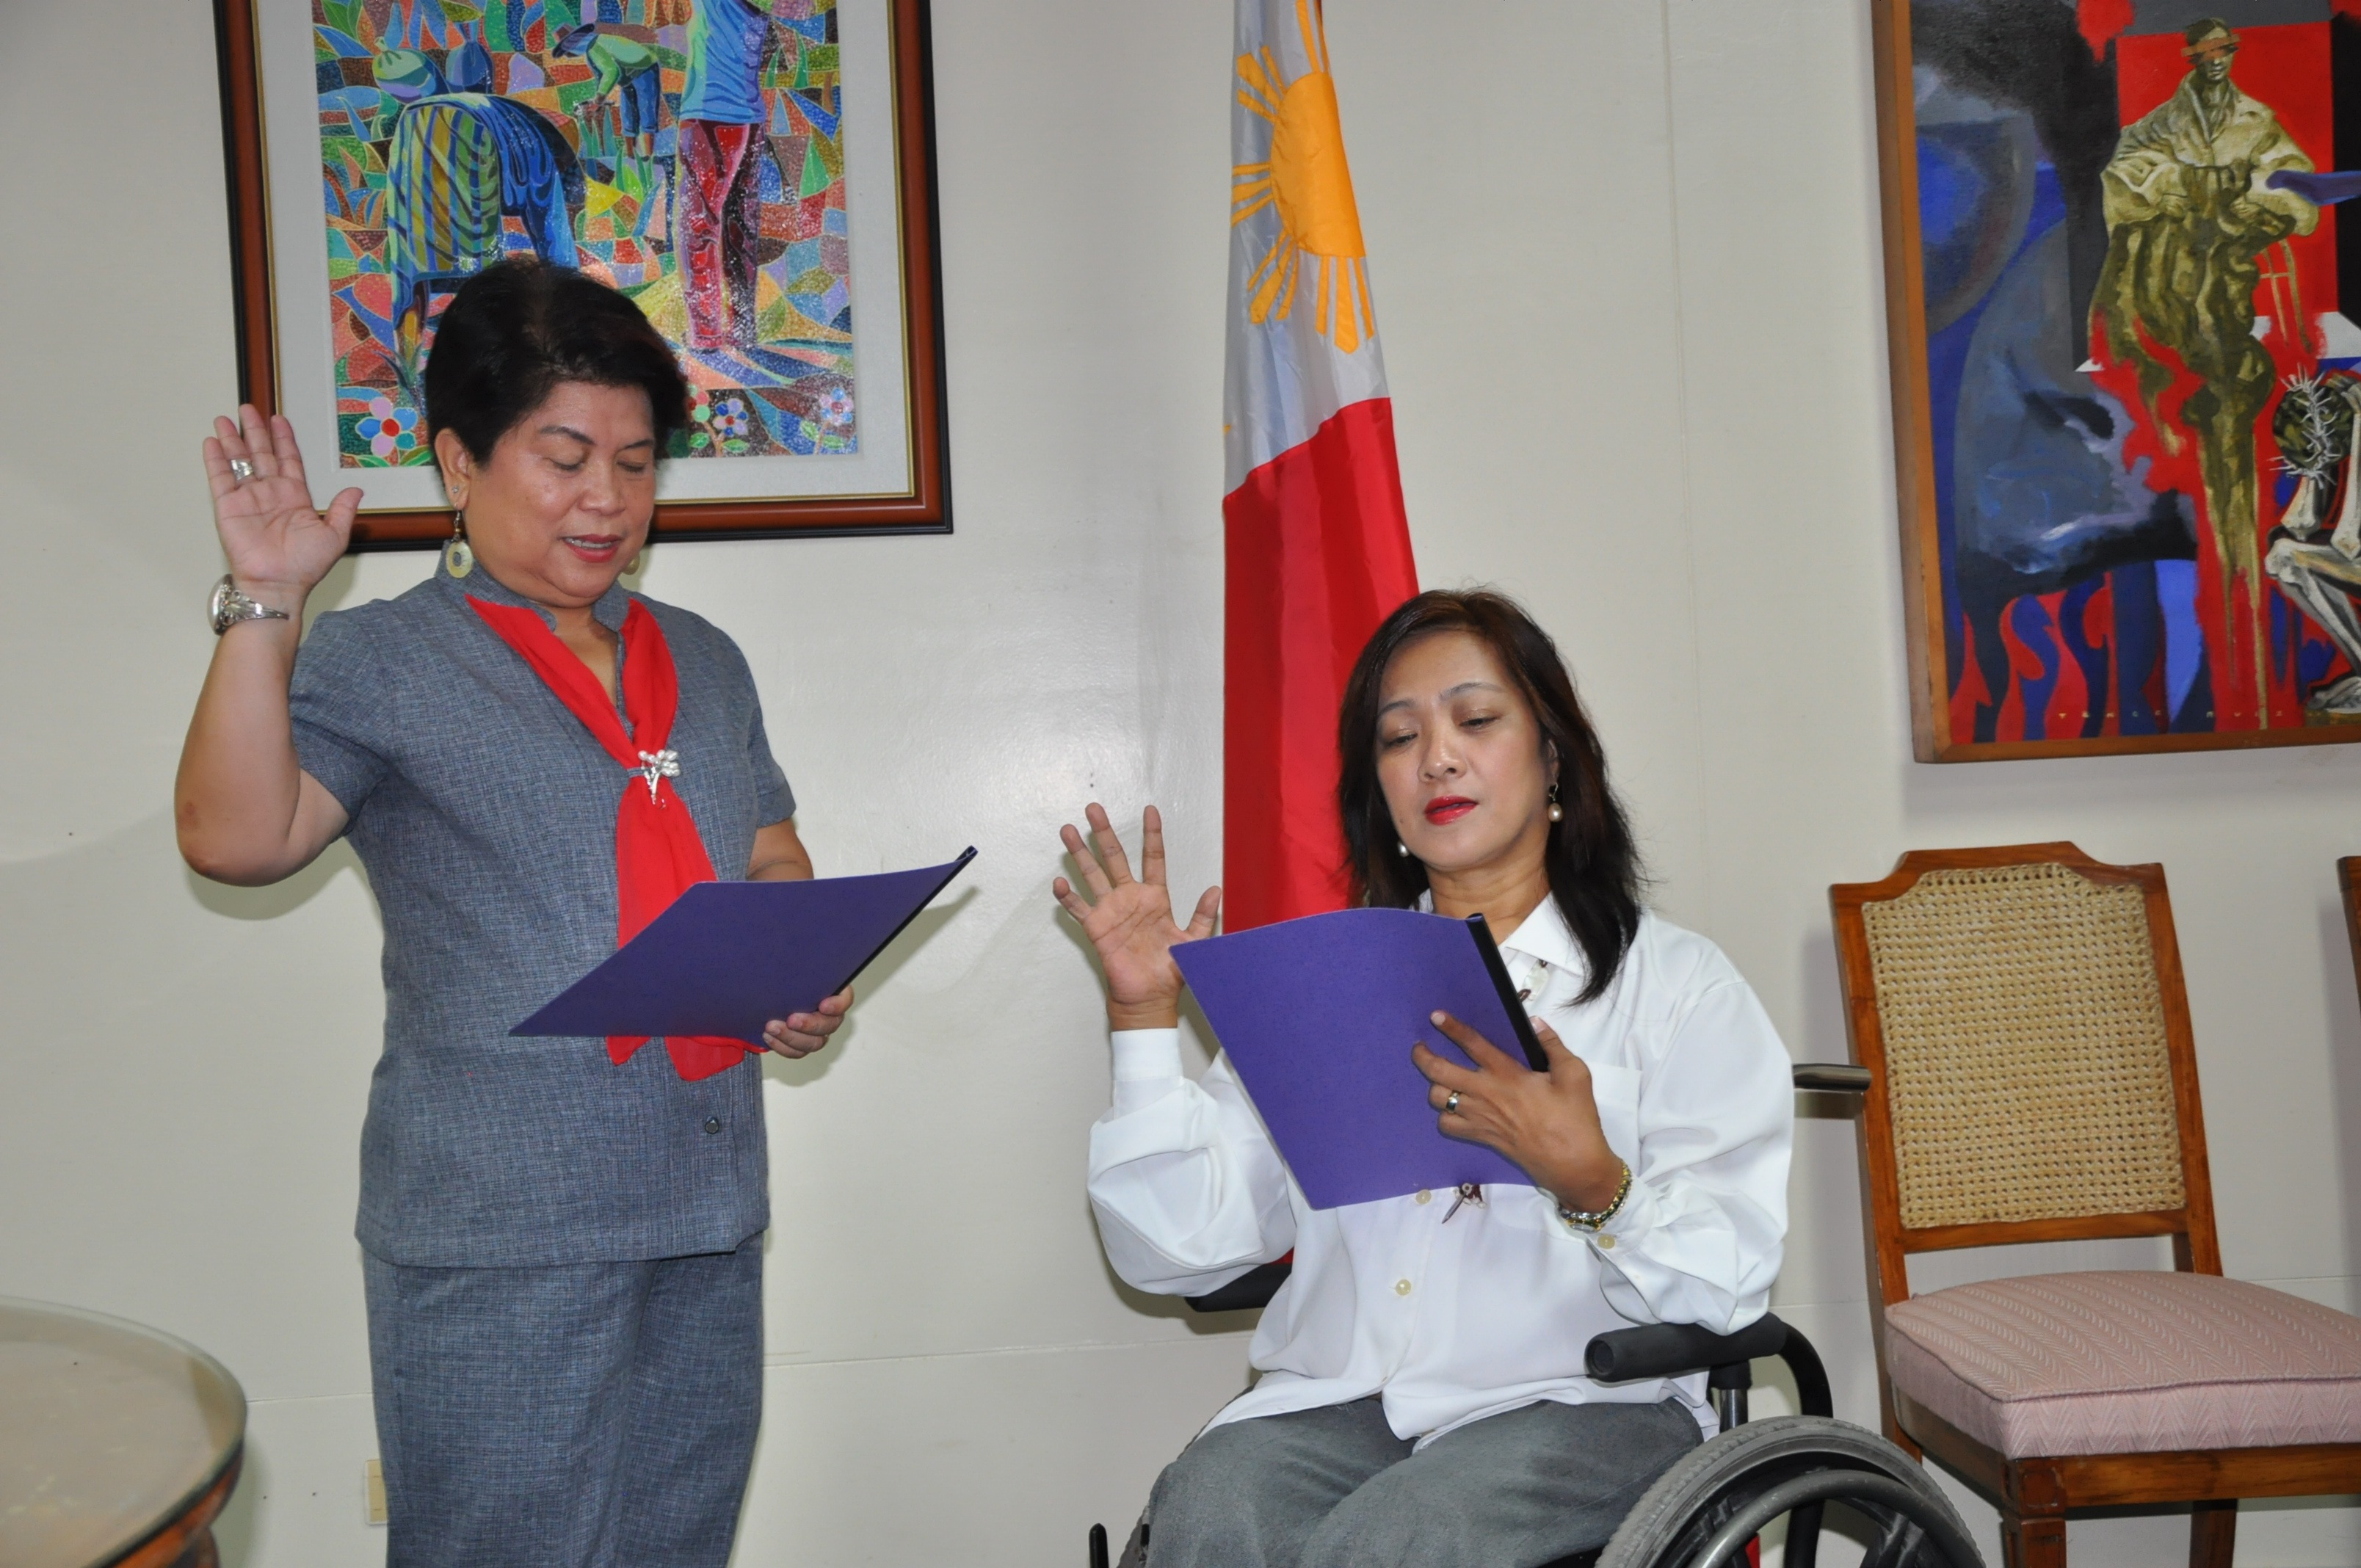 DSWD Secretary Corazon Juliano Soliman administers the oath taking of Ms. Carmen Reyes Zubiaga as the new Acting Executive Director of the National Council on Disability Affairs.